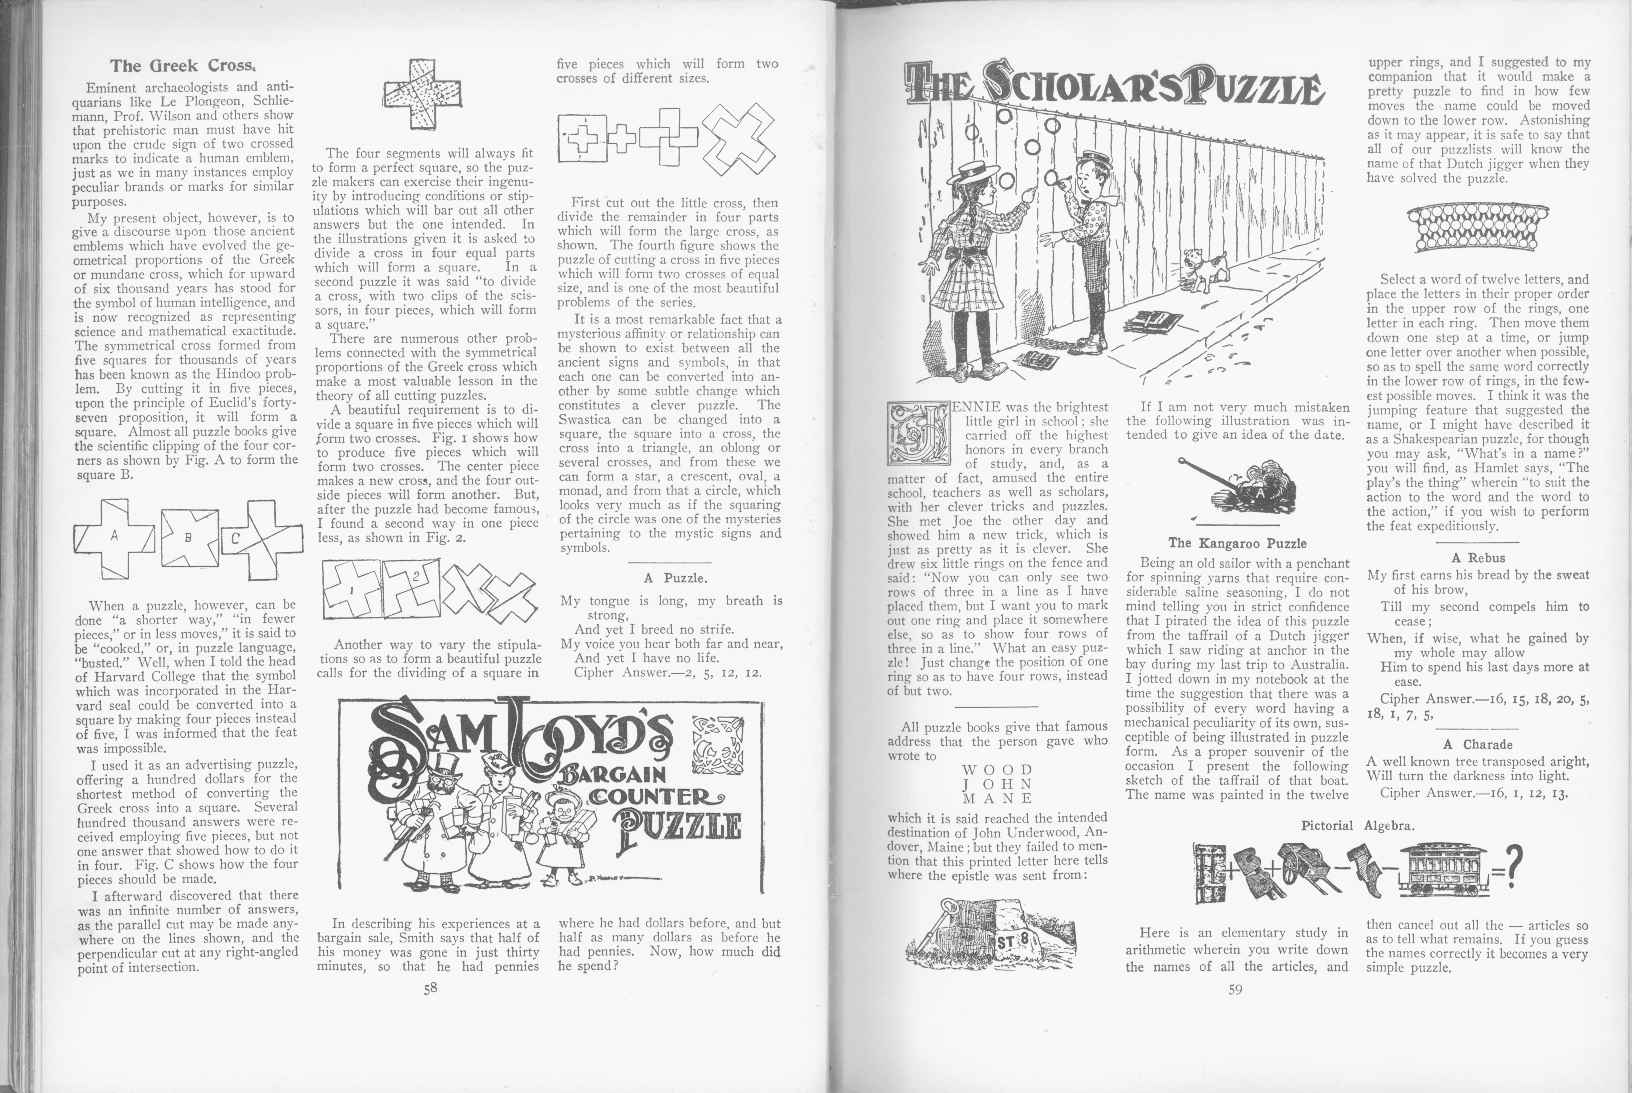 Sam Loyd - Cyclopedia of Puzzles - page 58-59